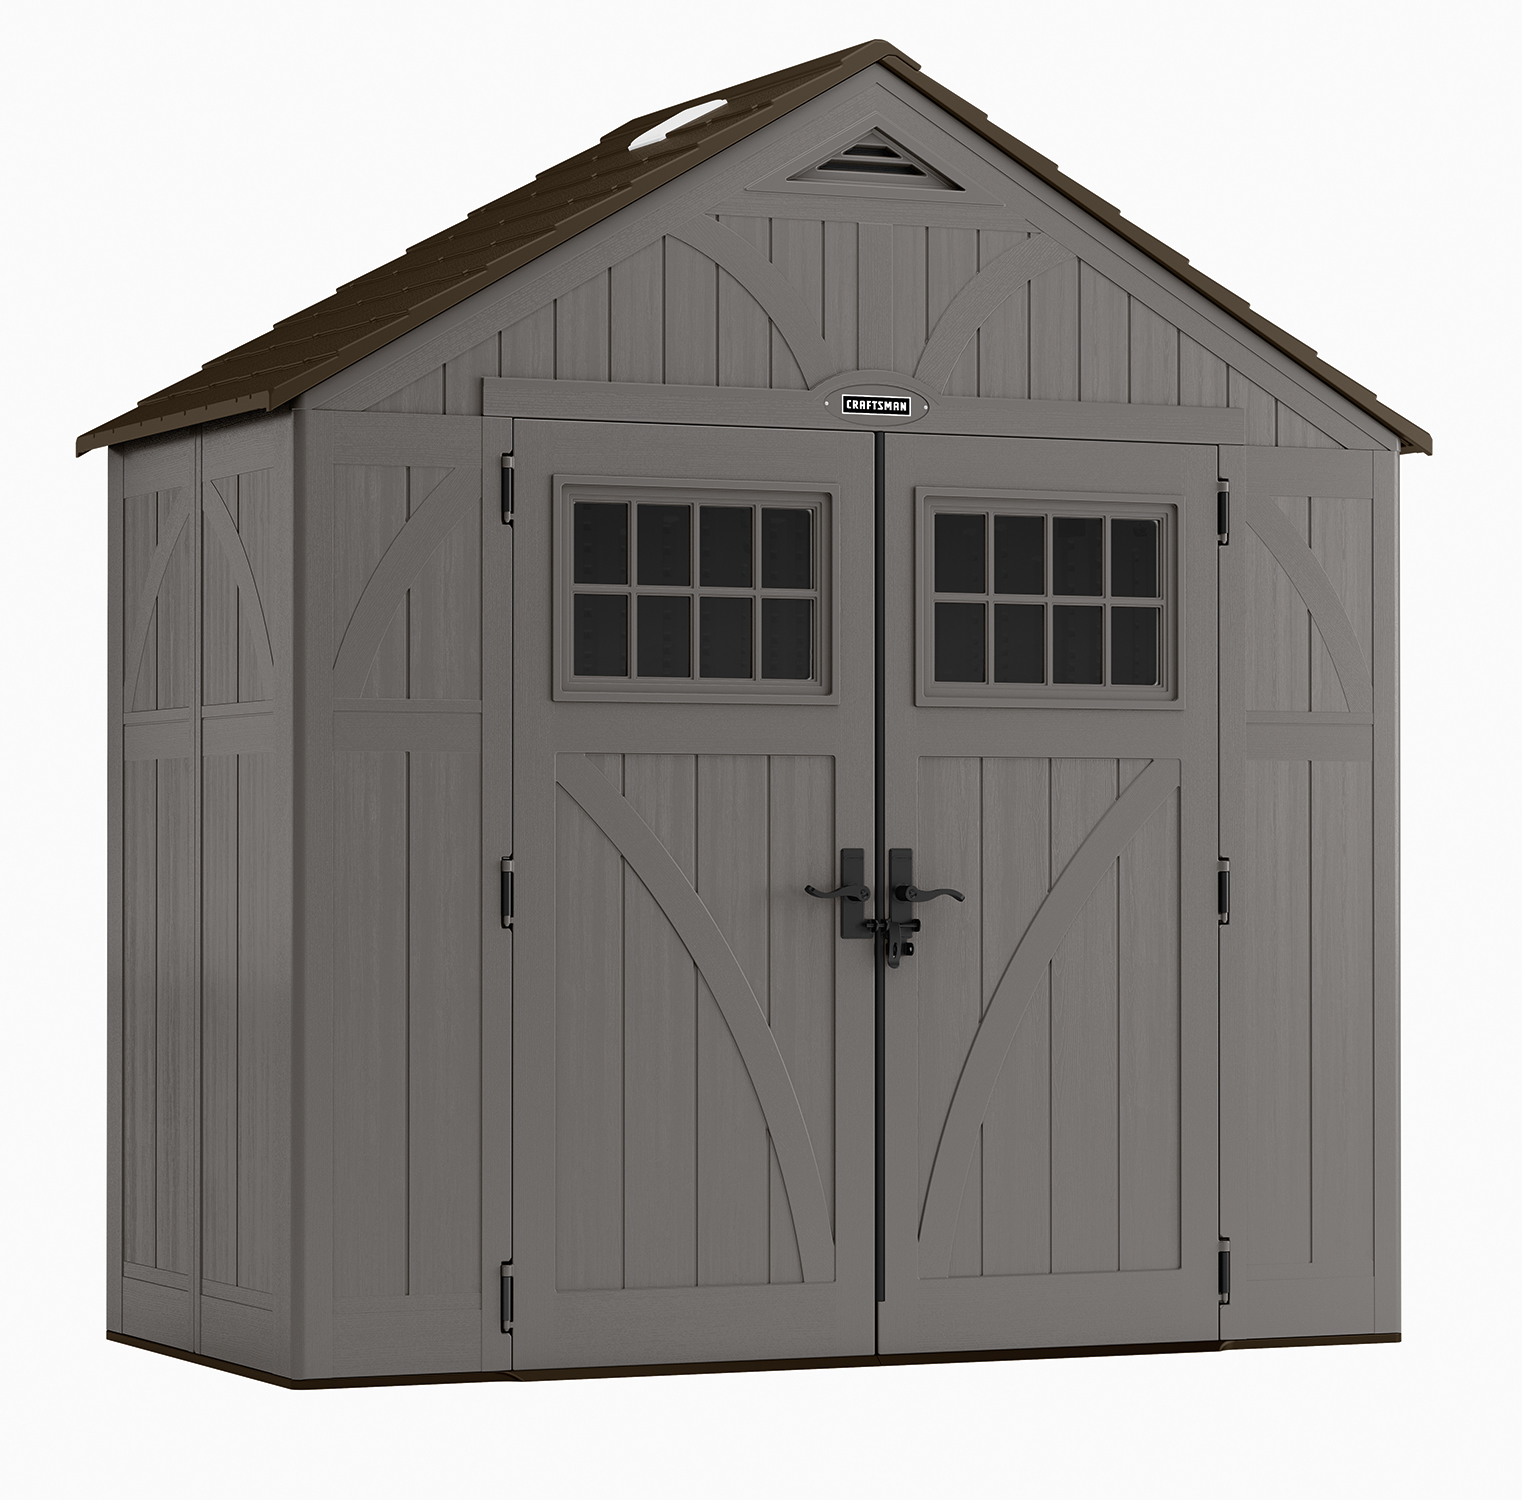 Costco Sheds | Rubbermaid Storage Shed Accessories | Rubbermaid Storage Sheds